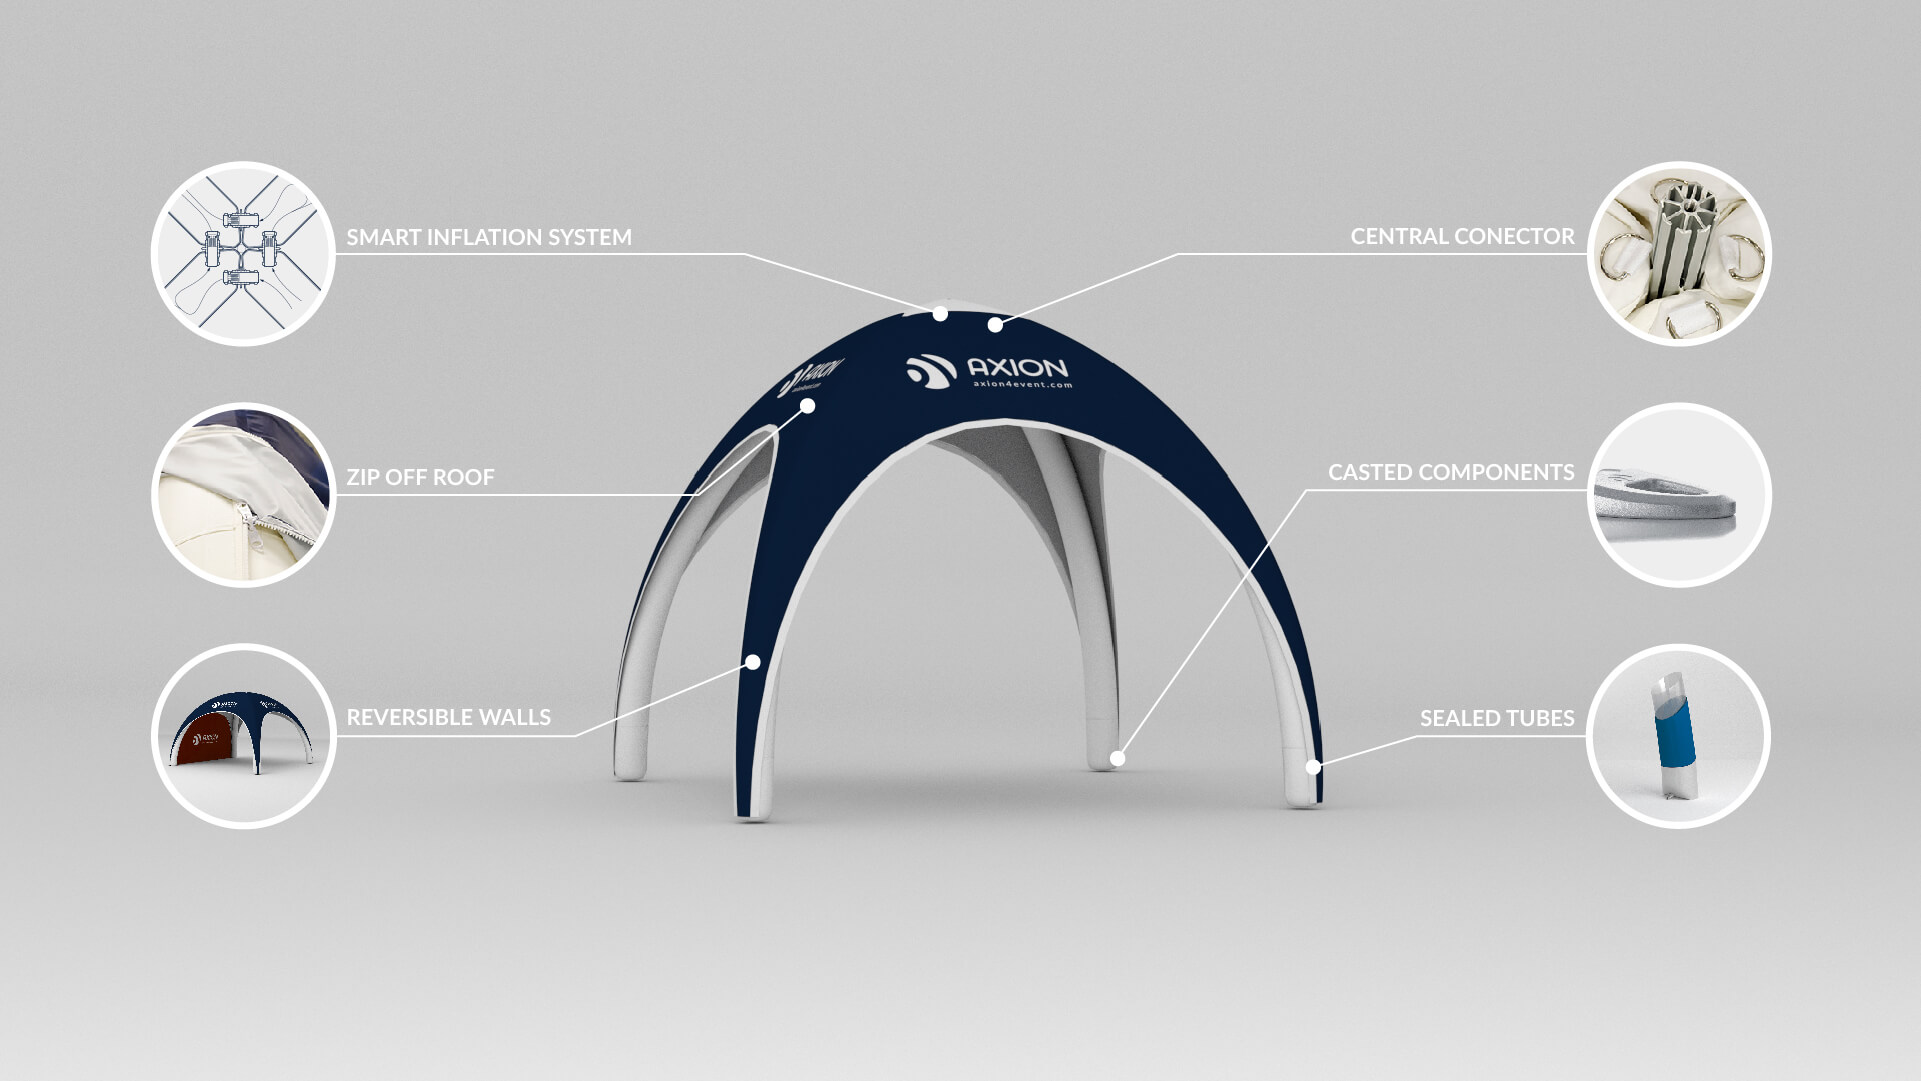 axion-lite-tent-feature